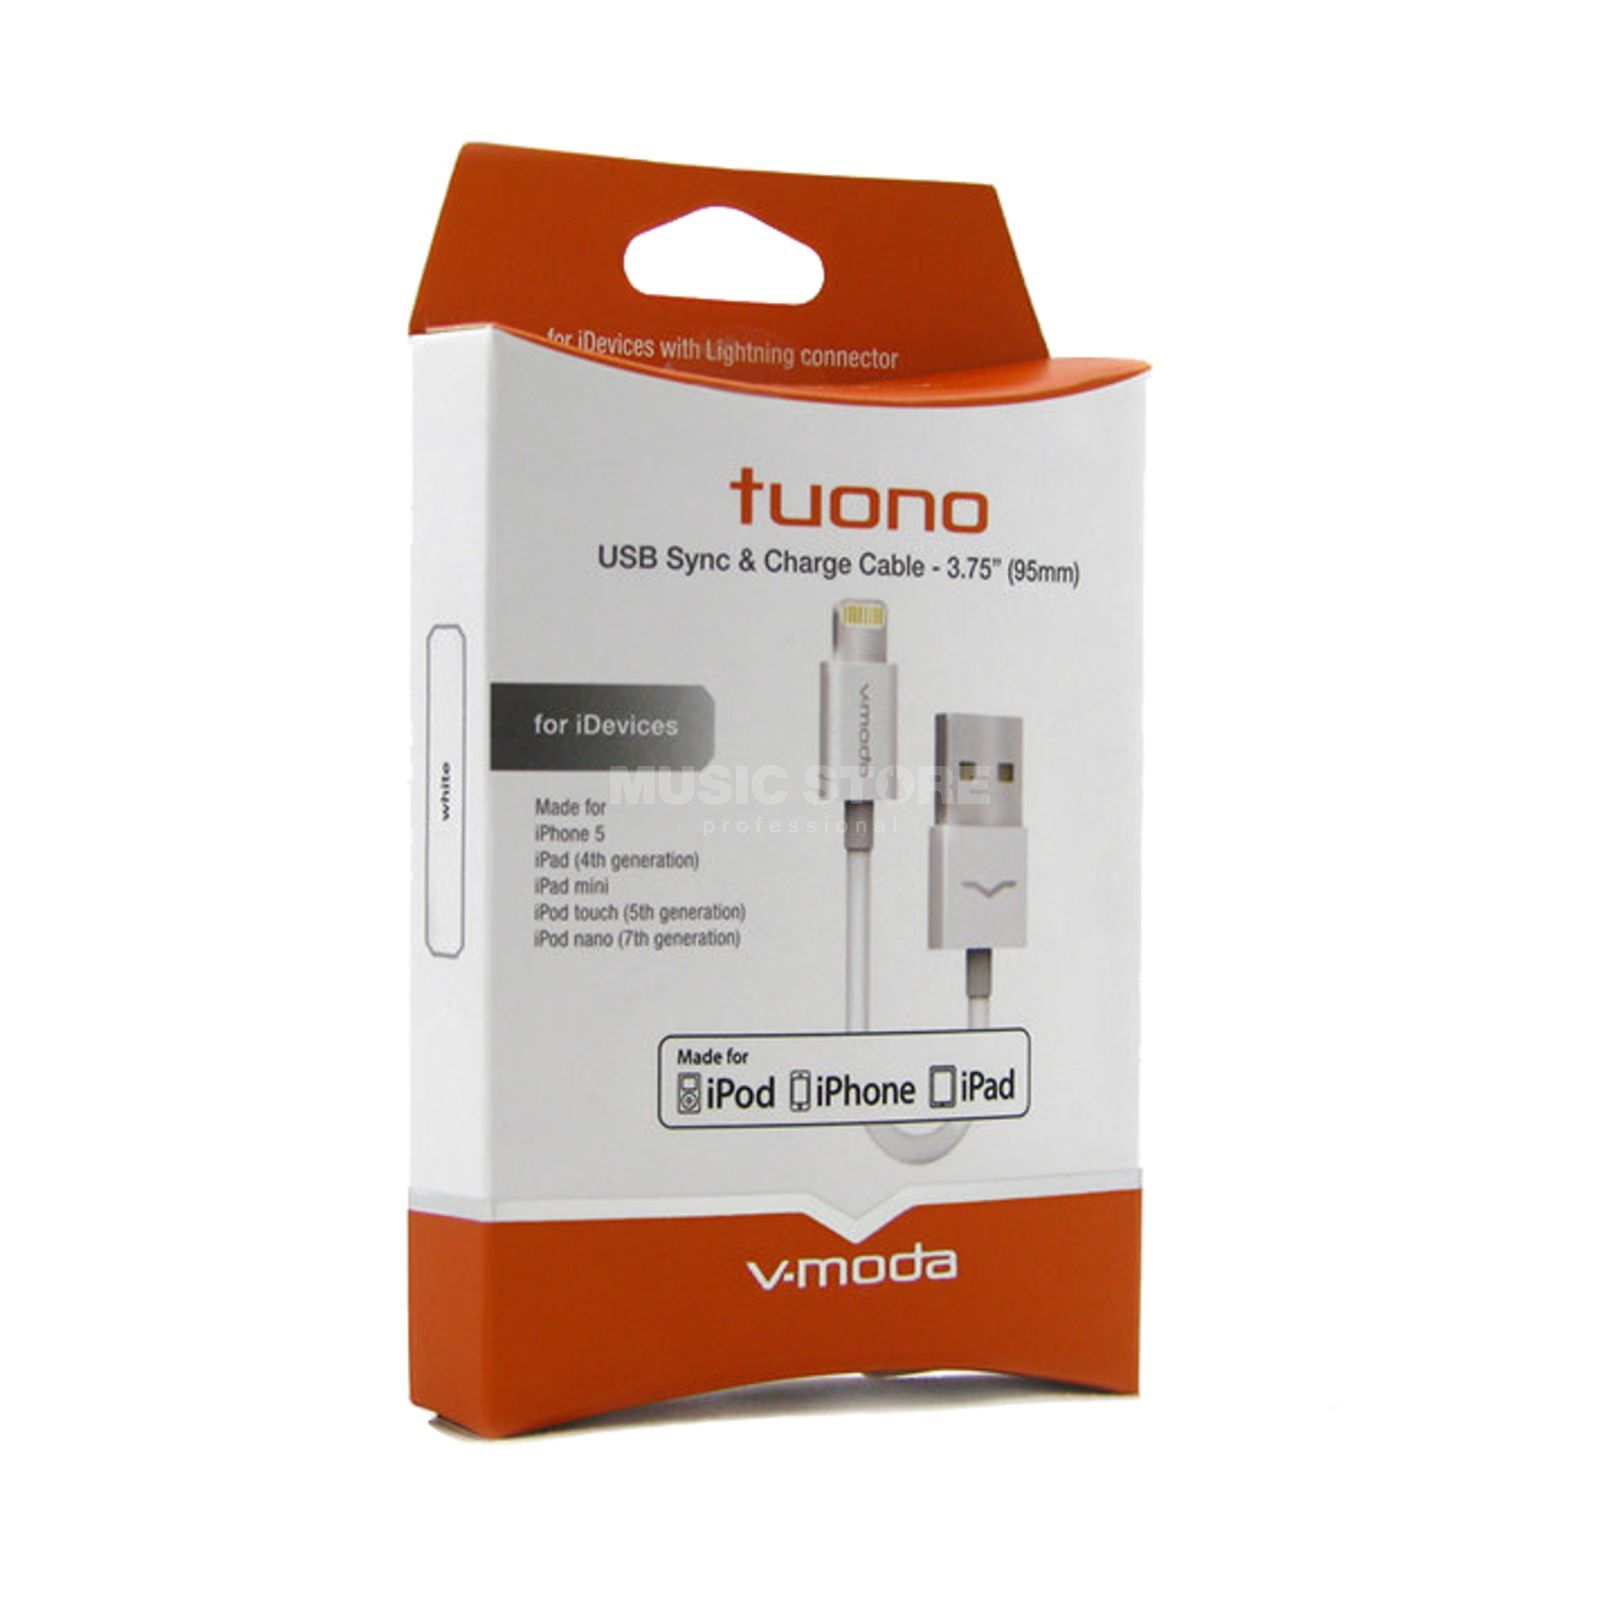 V-Moda Tuono Lightning Cable white Kabel für iDevices Product Image